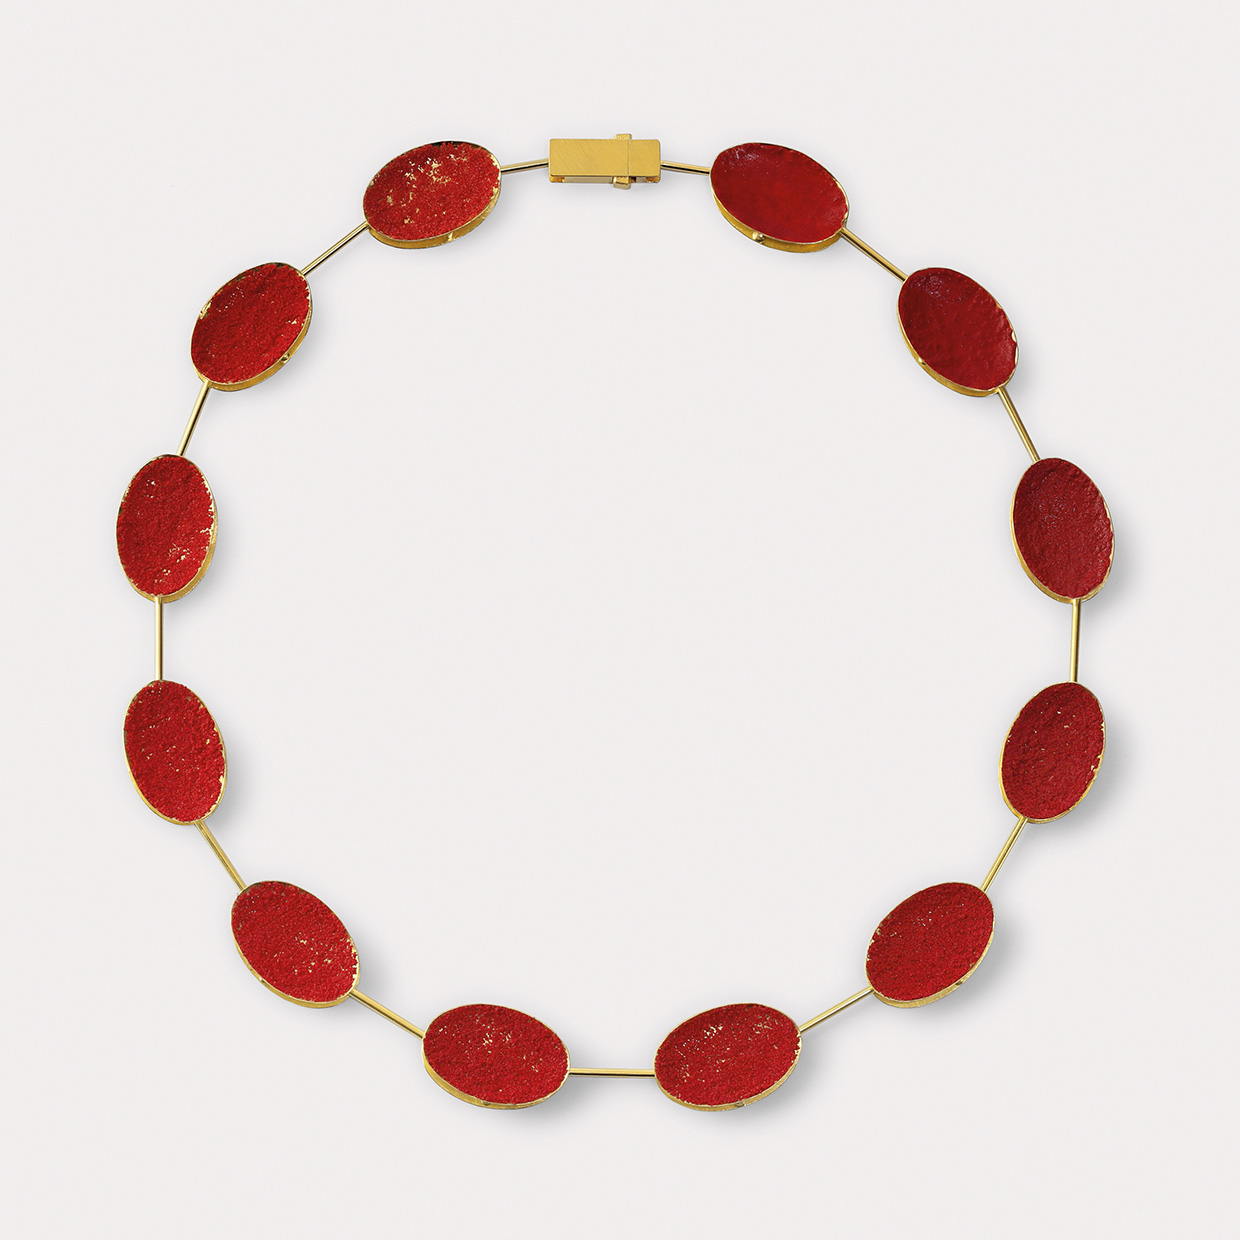 necklace  2015  gold  750  red  pigment  505x12  mm